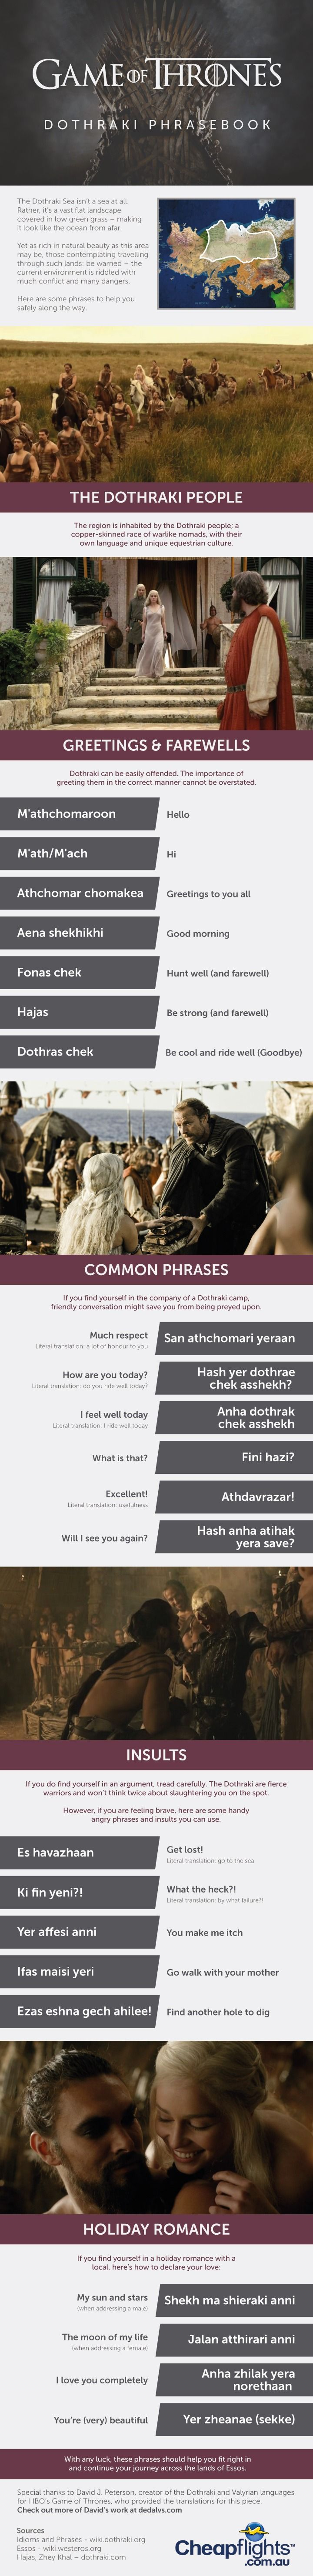 This handy Dothraki phrasebook to help make your journey across Essos a lot more comfortable. For the night is dark and full of grammar.